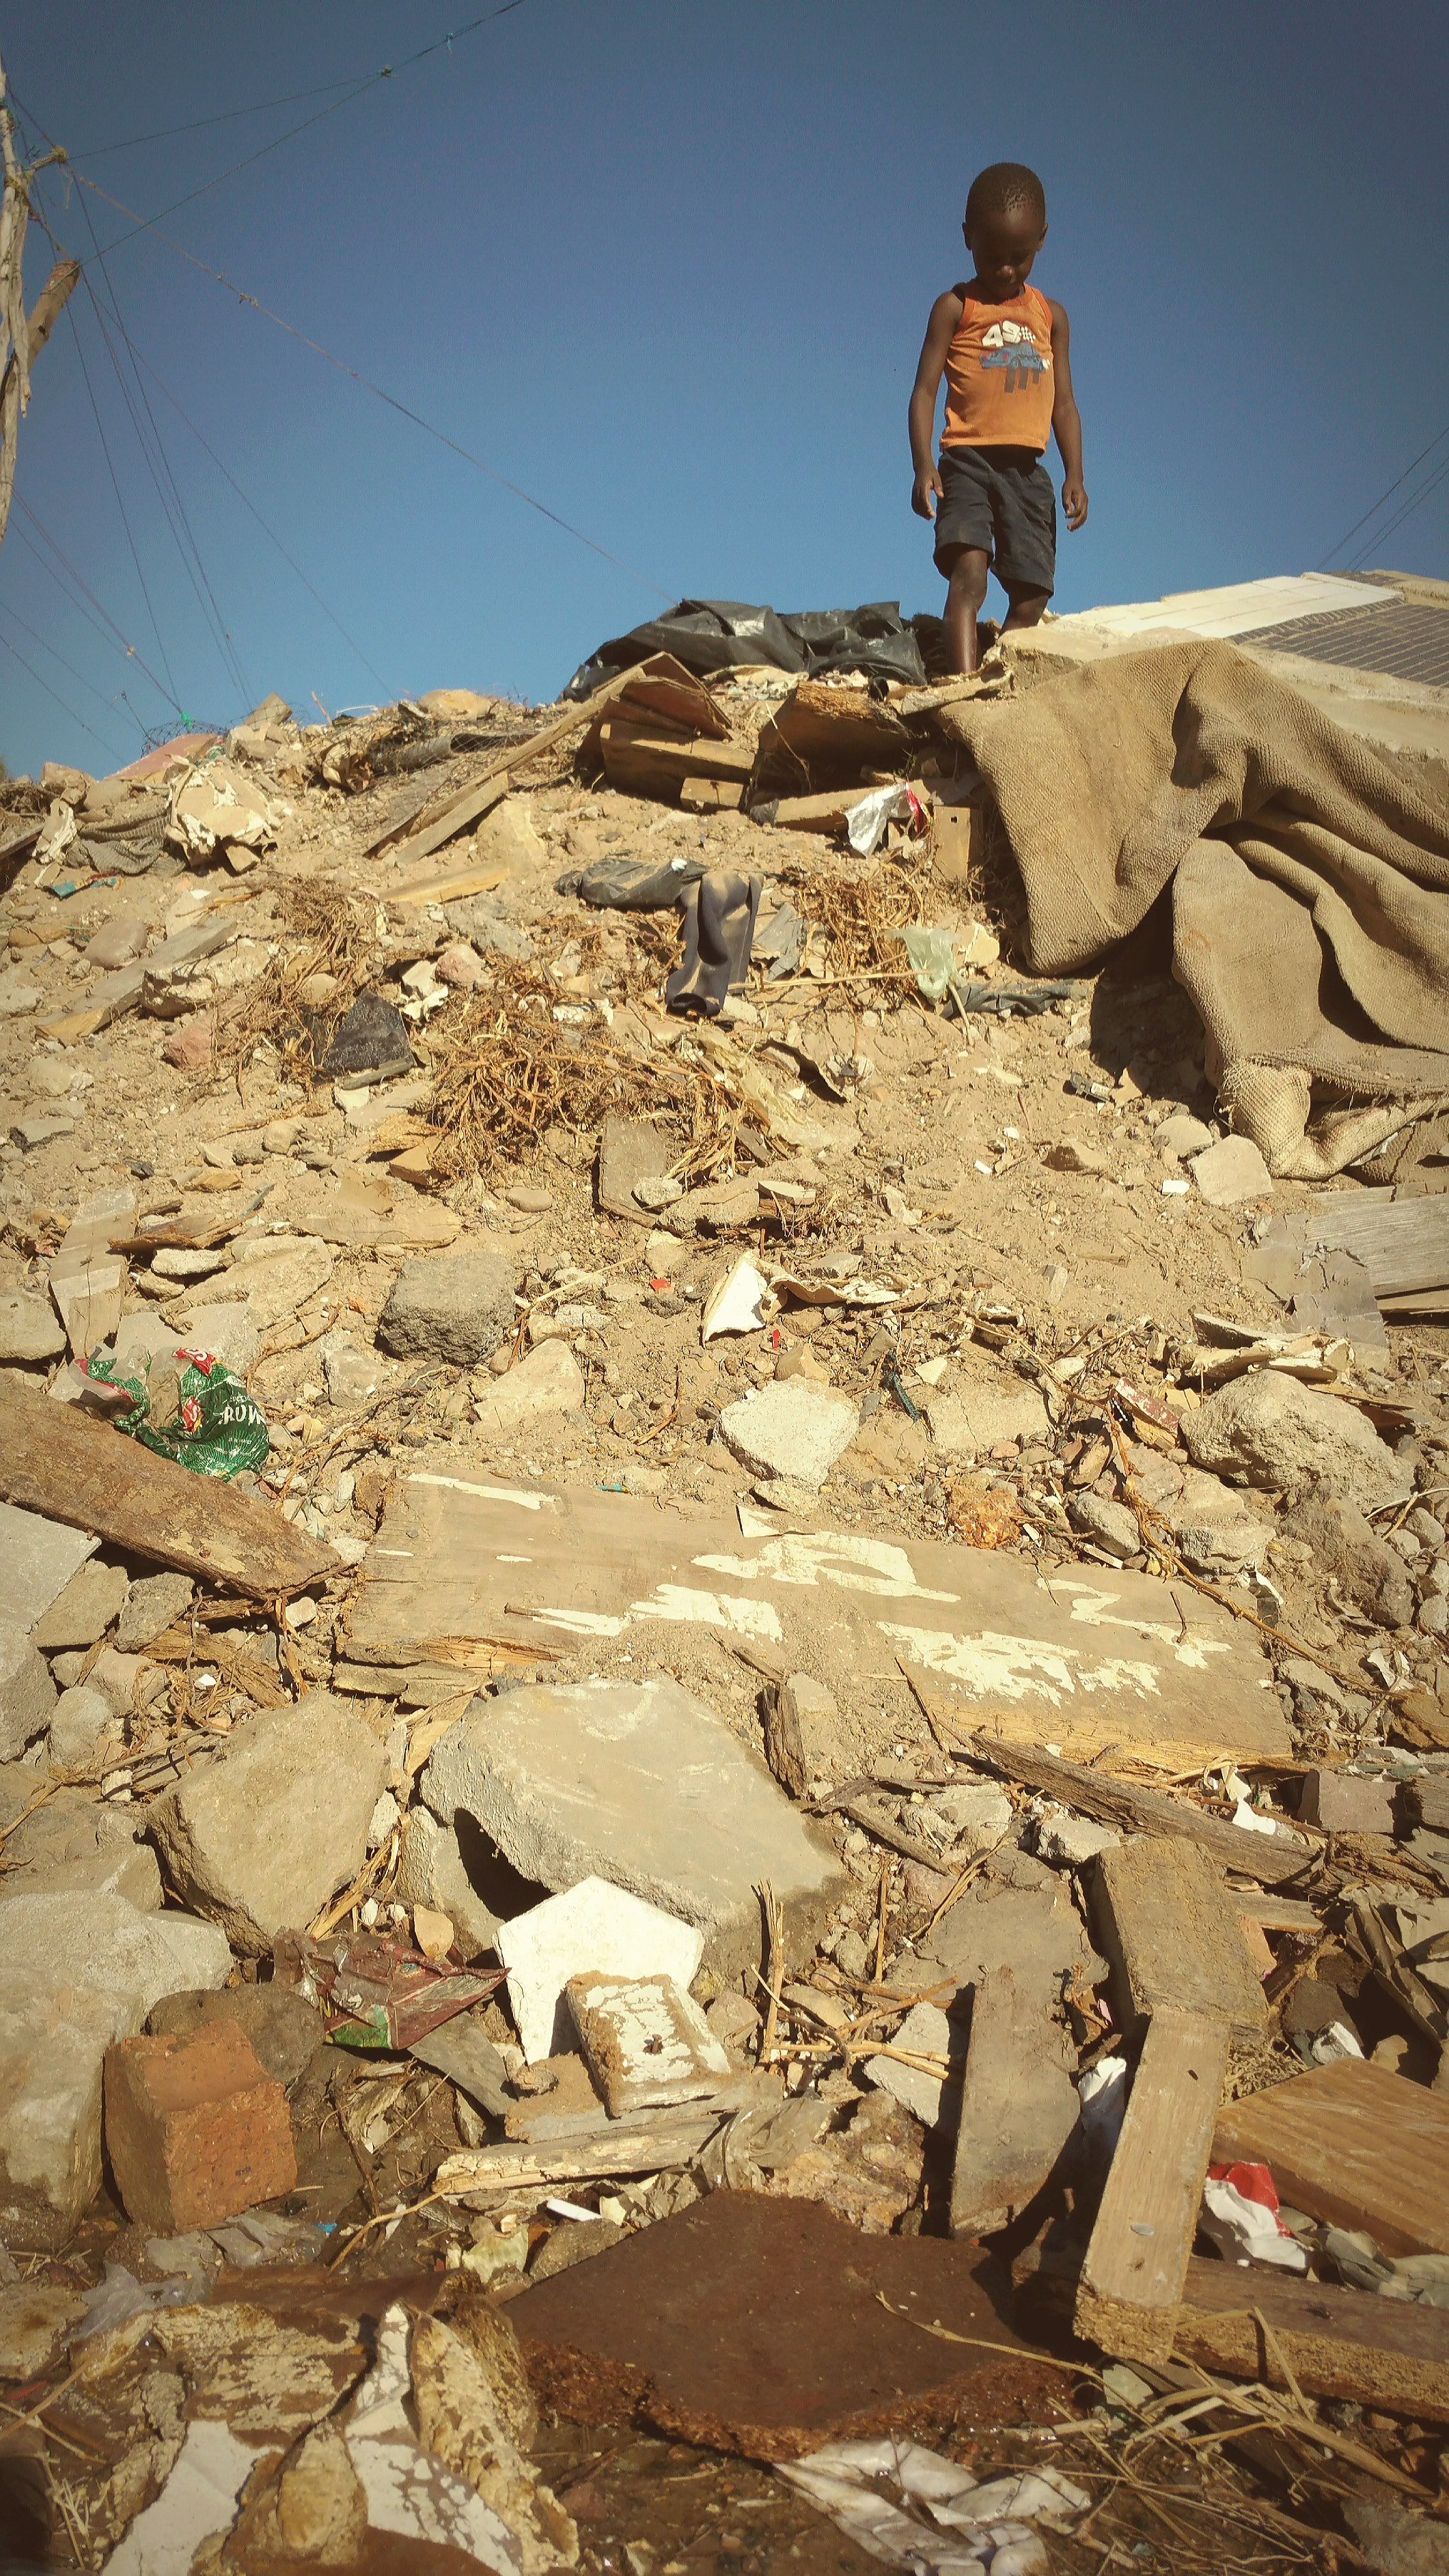 a little boy on a pile of rubble and rubbish